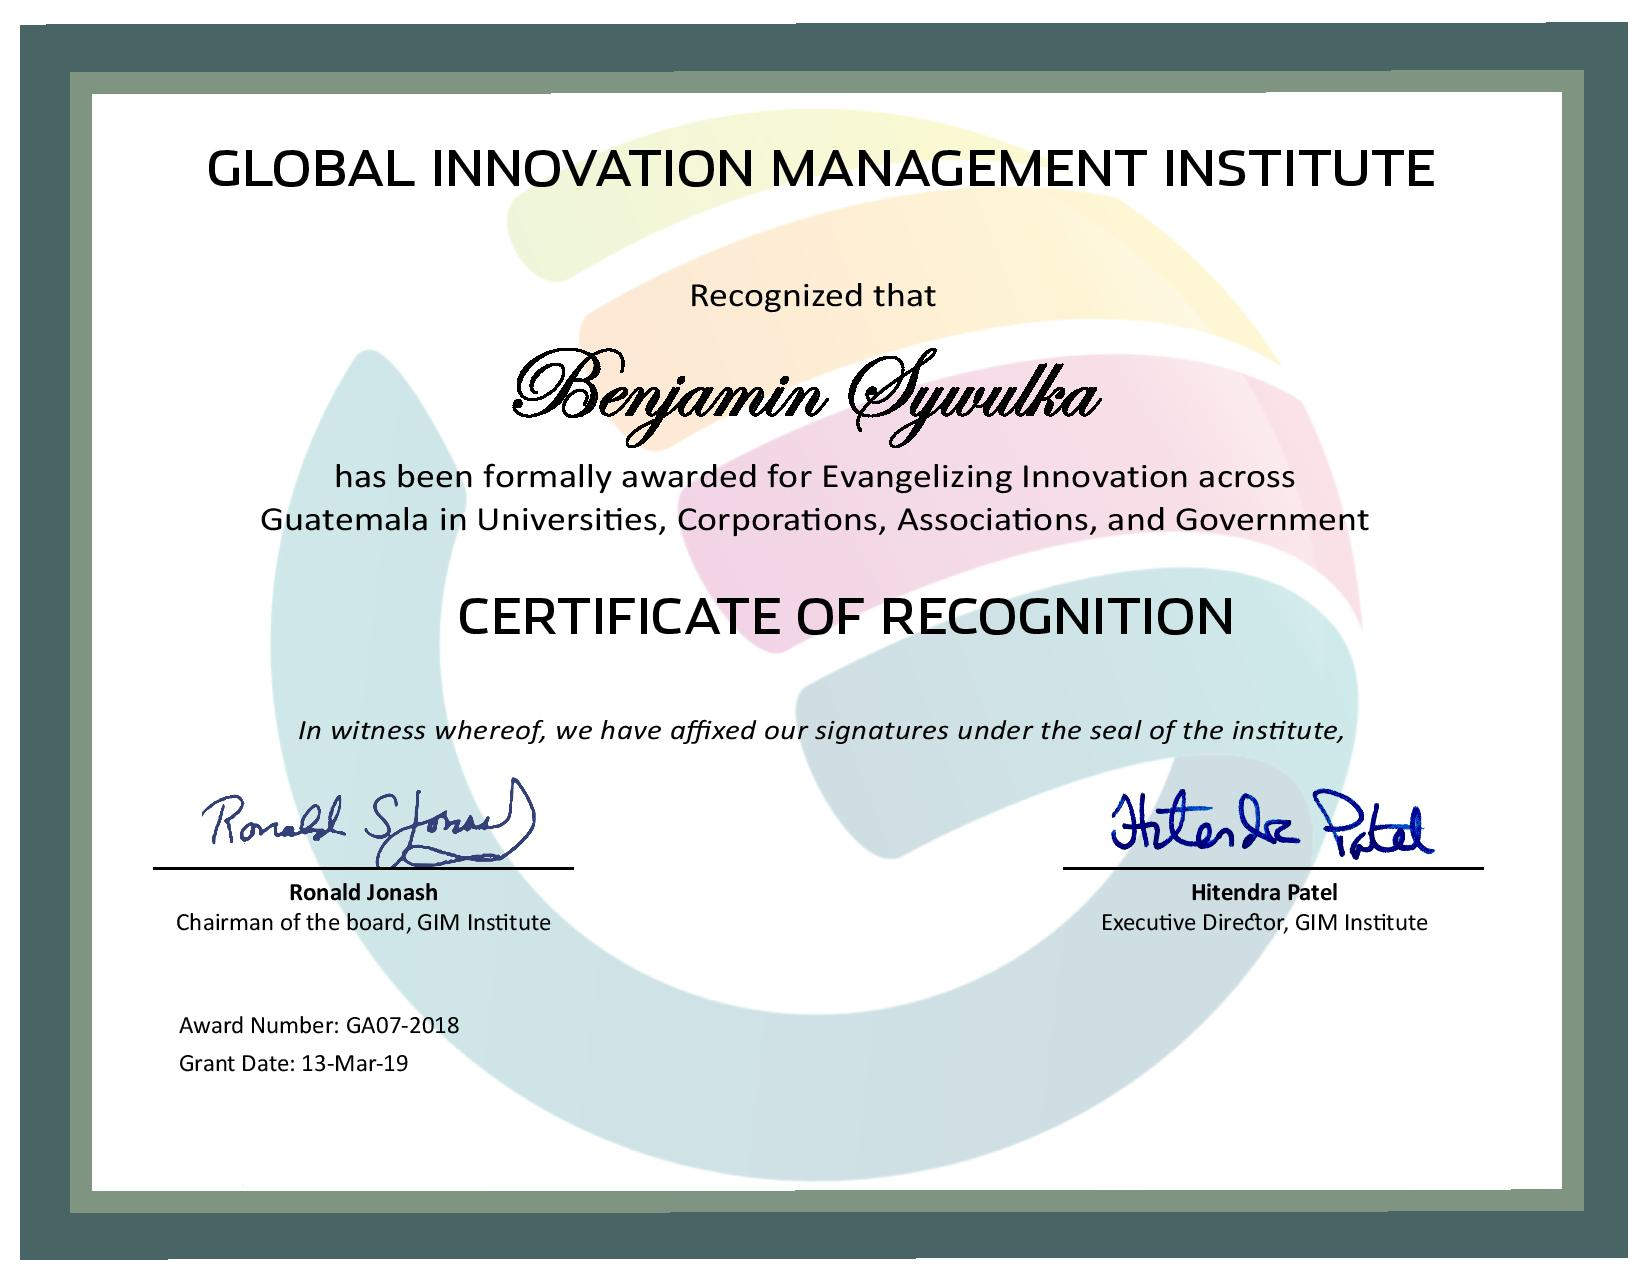 for Evangelizing Innovation across Guatemala in Universities, Corporations, Associations, and Government